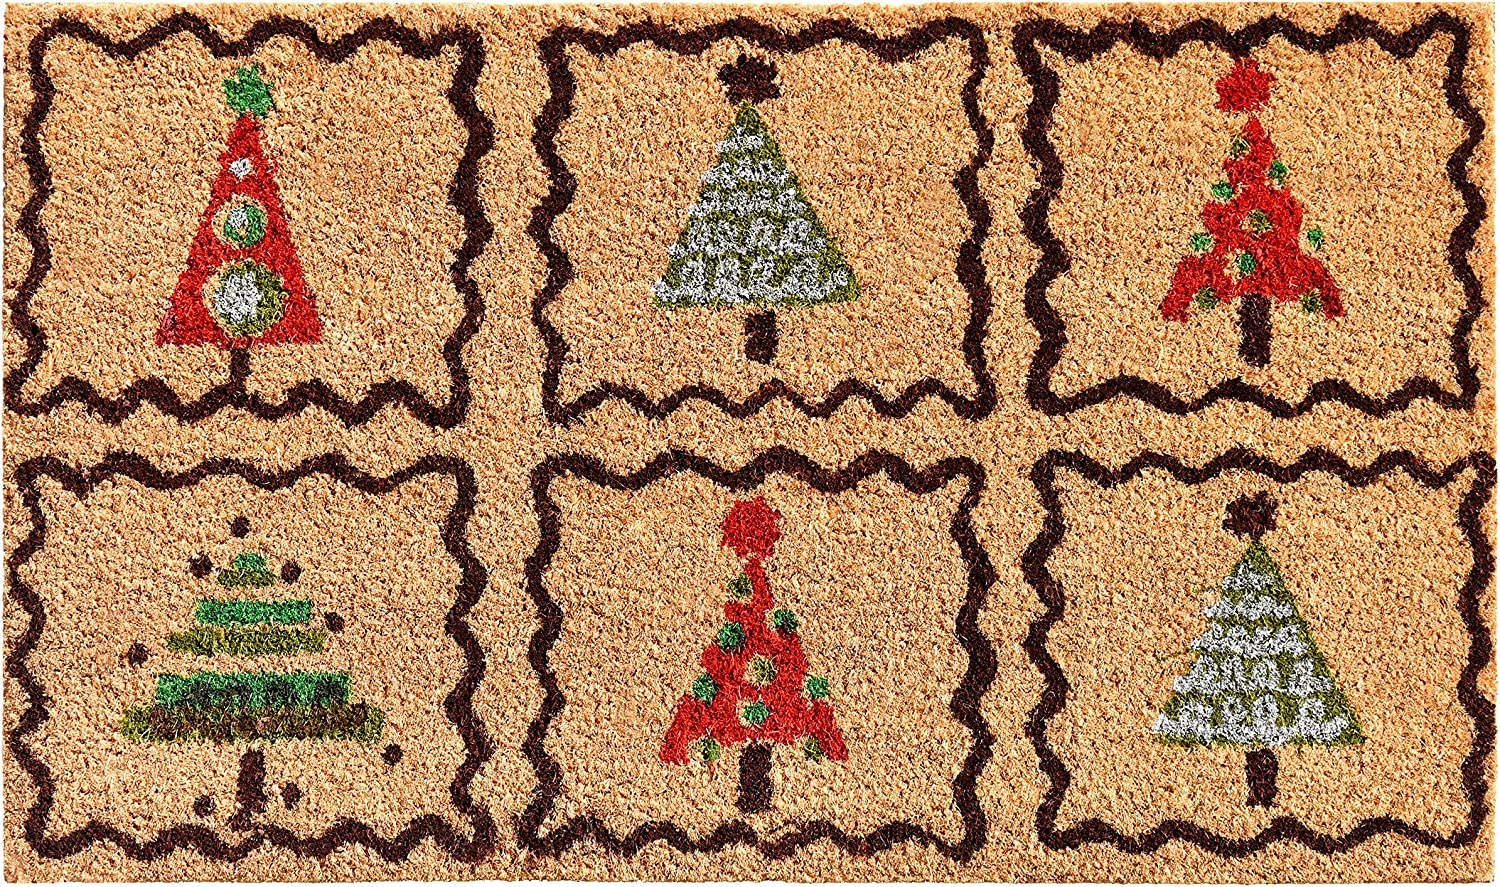 Calloway Mills 121051729 Christmas Challenge the lowest price Trees Ranking TOP15 Doormat 17